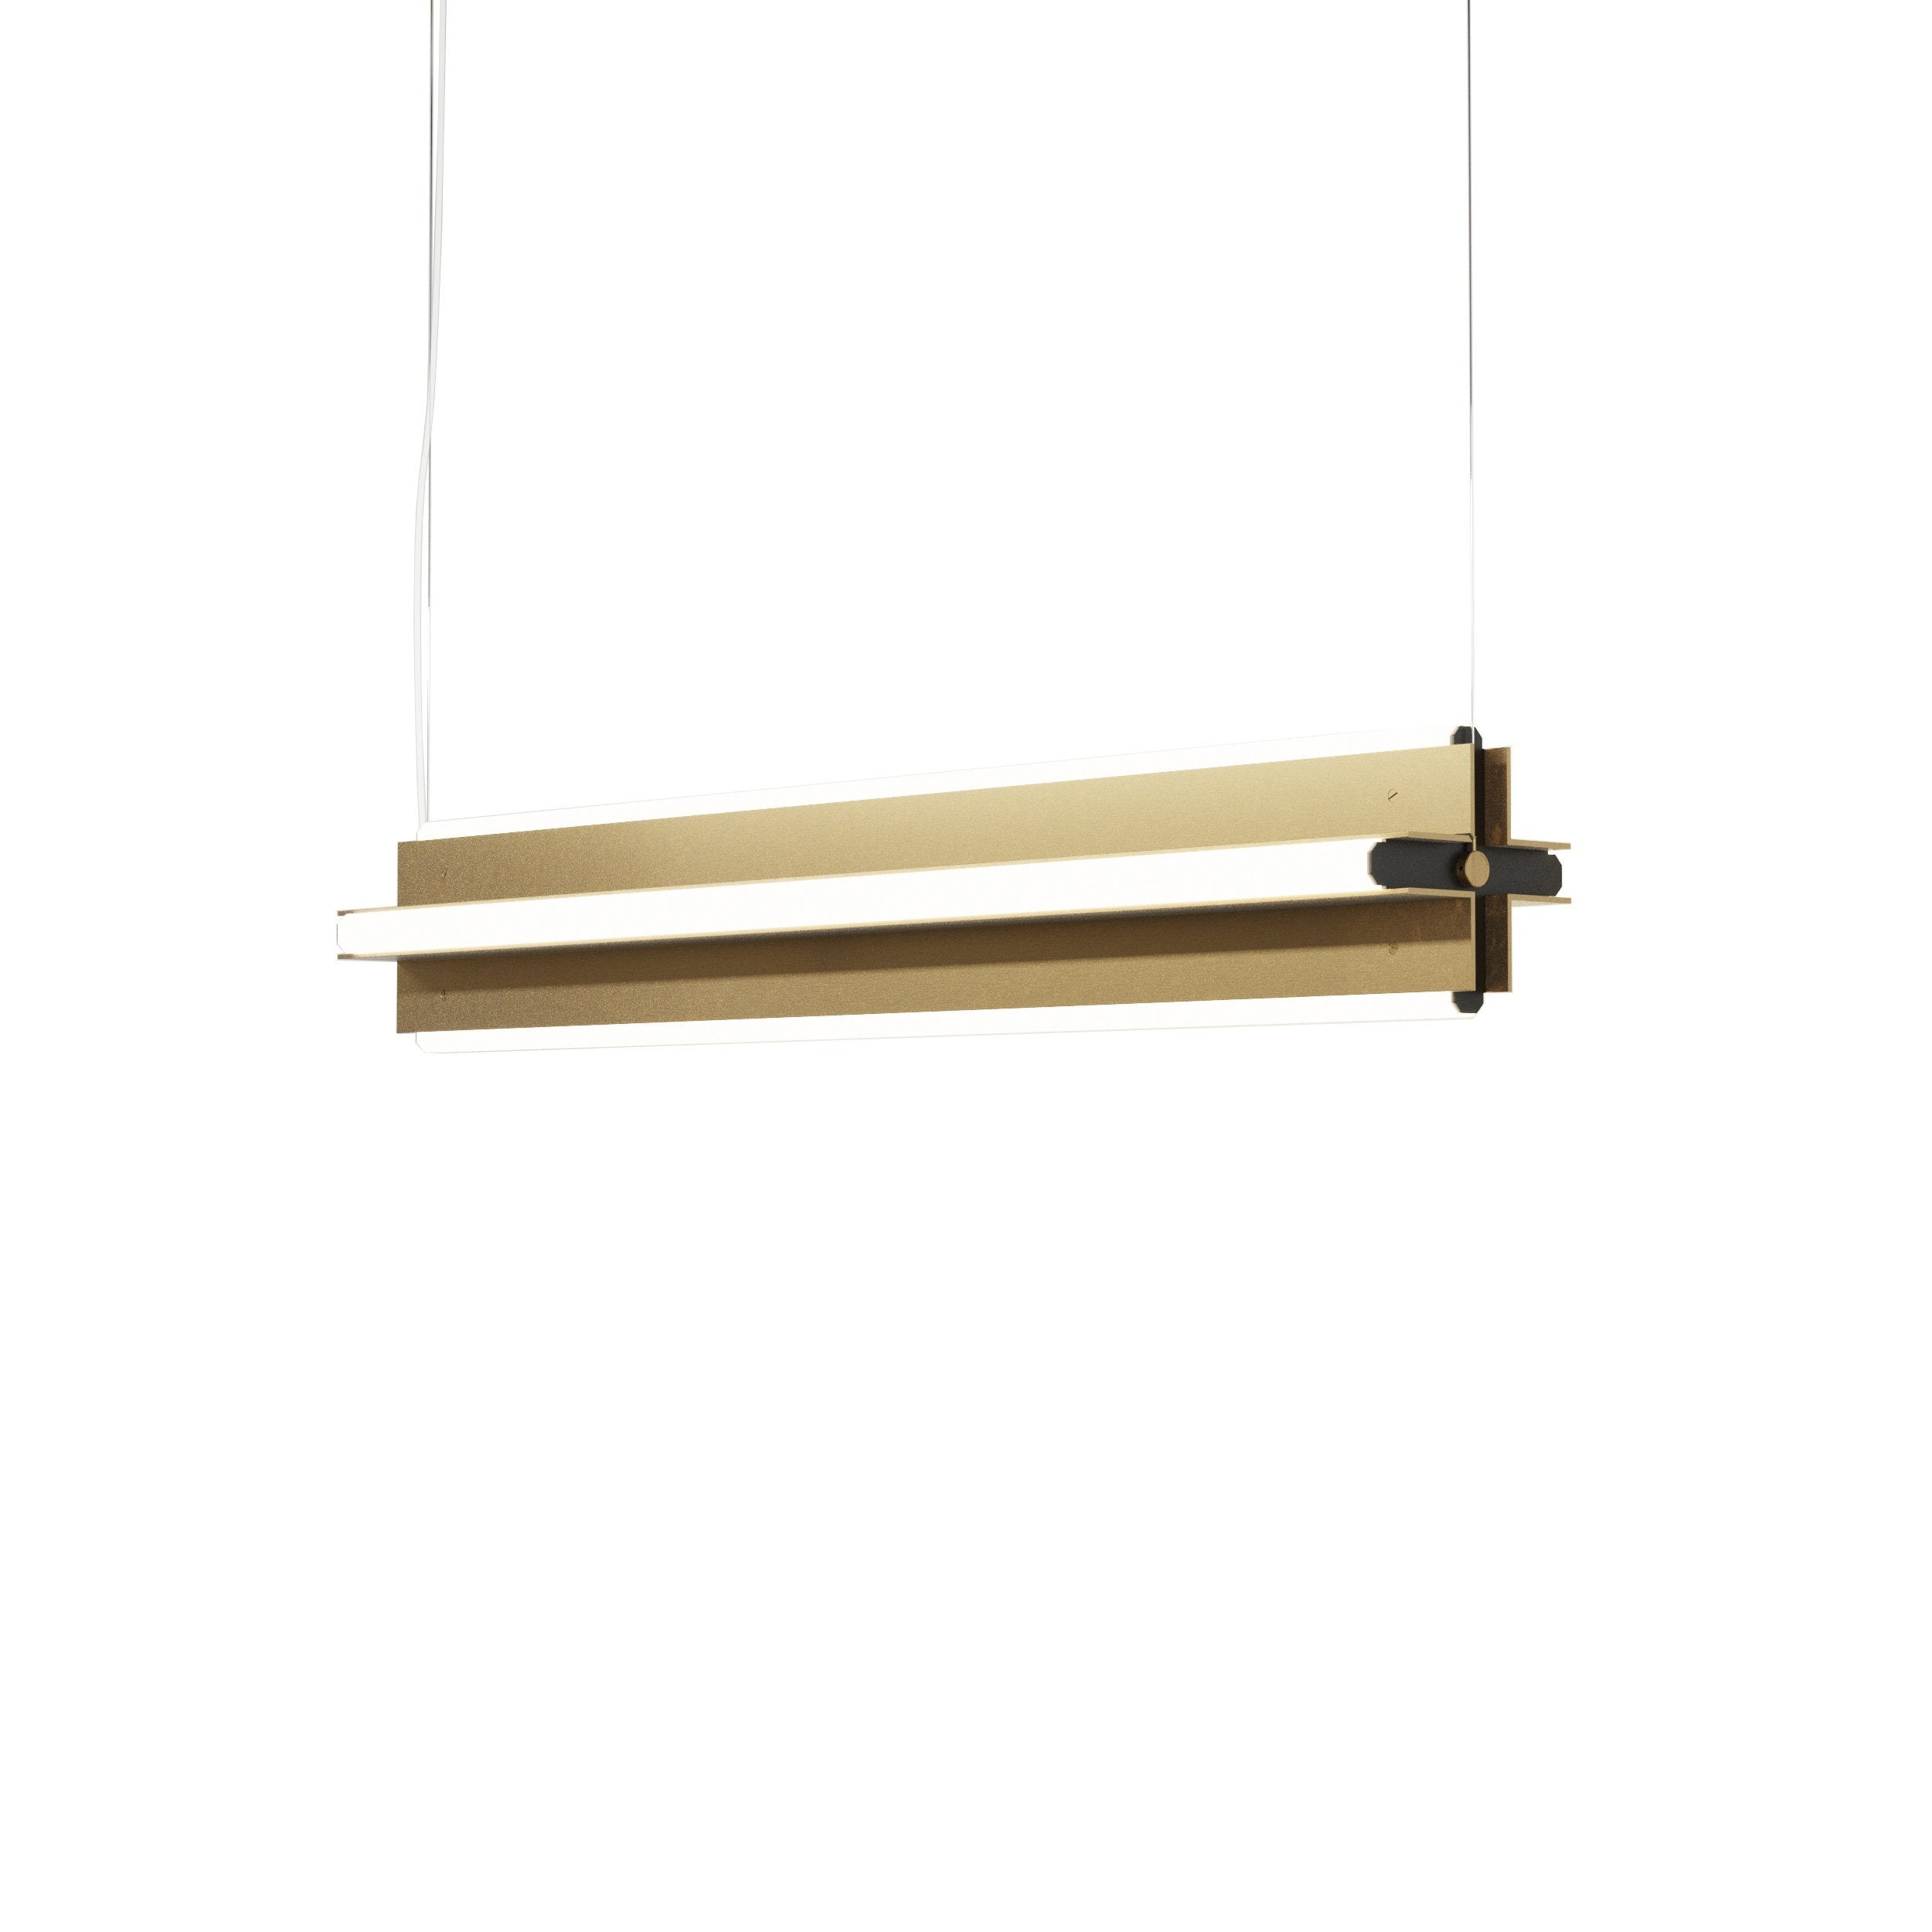 "Axis X Suspension Light: 36"" + Stain Brass"